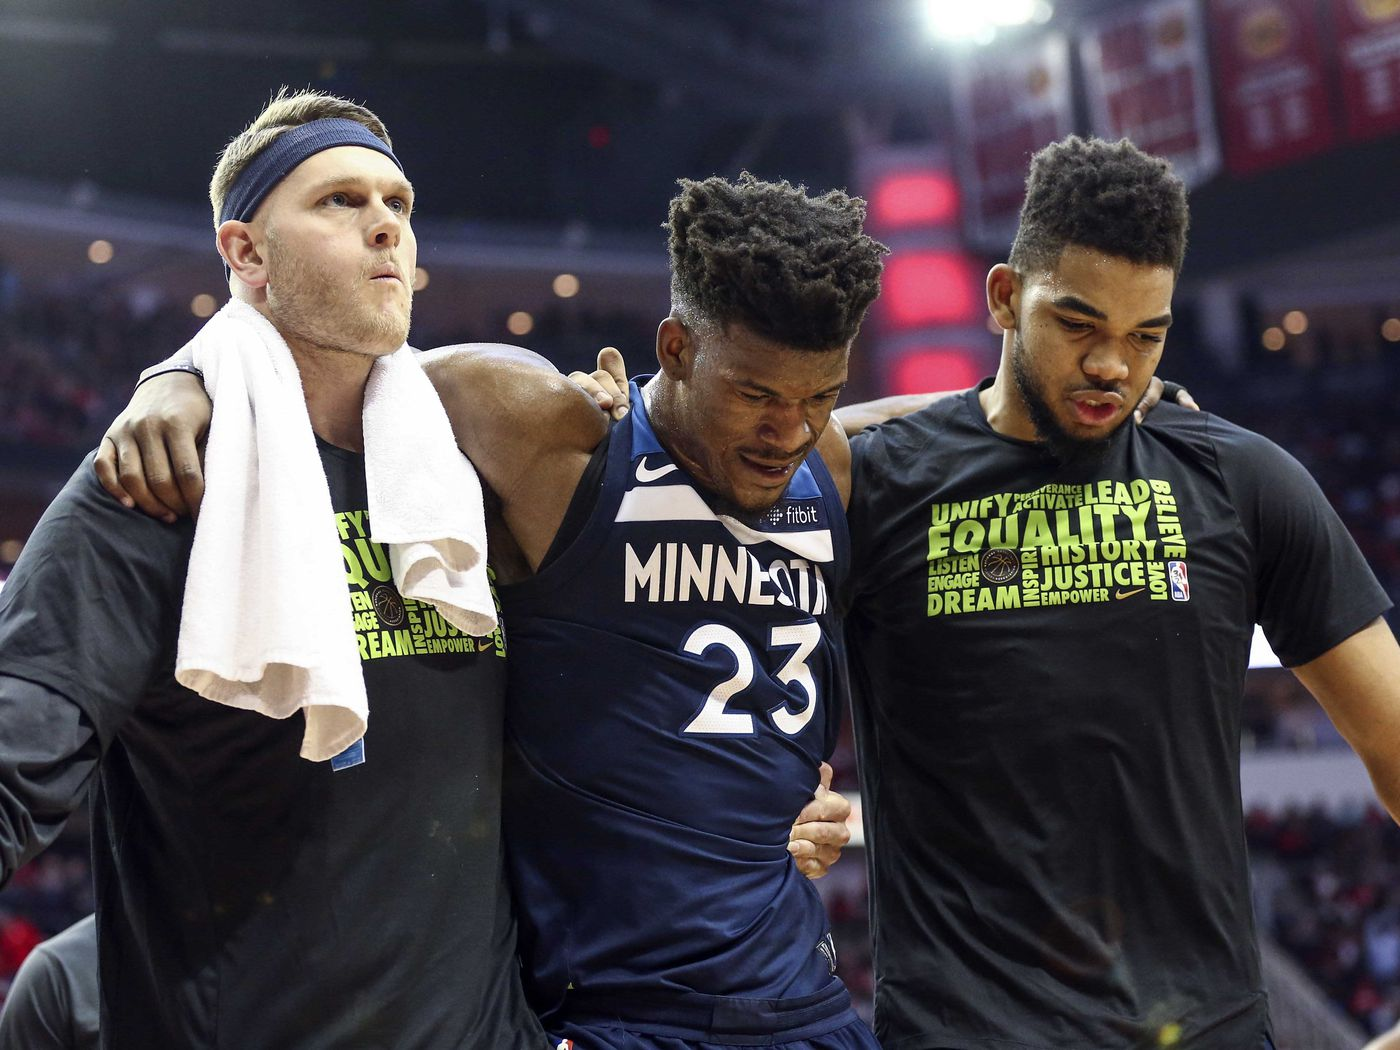 Jimmy Butler Injury Timberwolves Star Out 4 6 Weeks With Torn Meniscus Will Undergo Surgery Sbnation Com